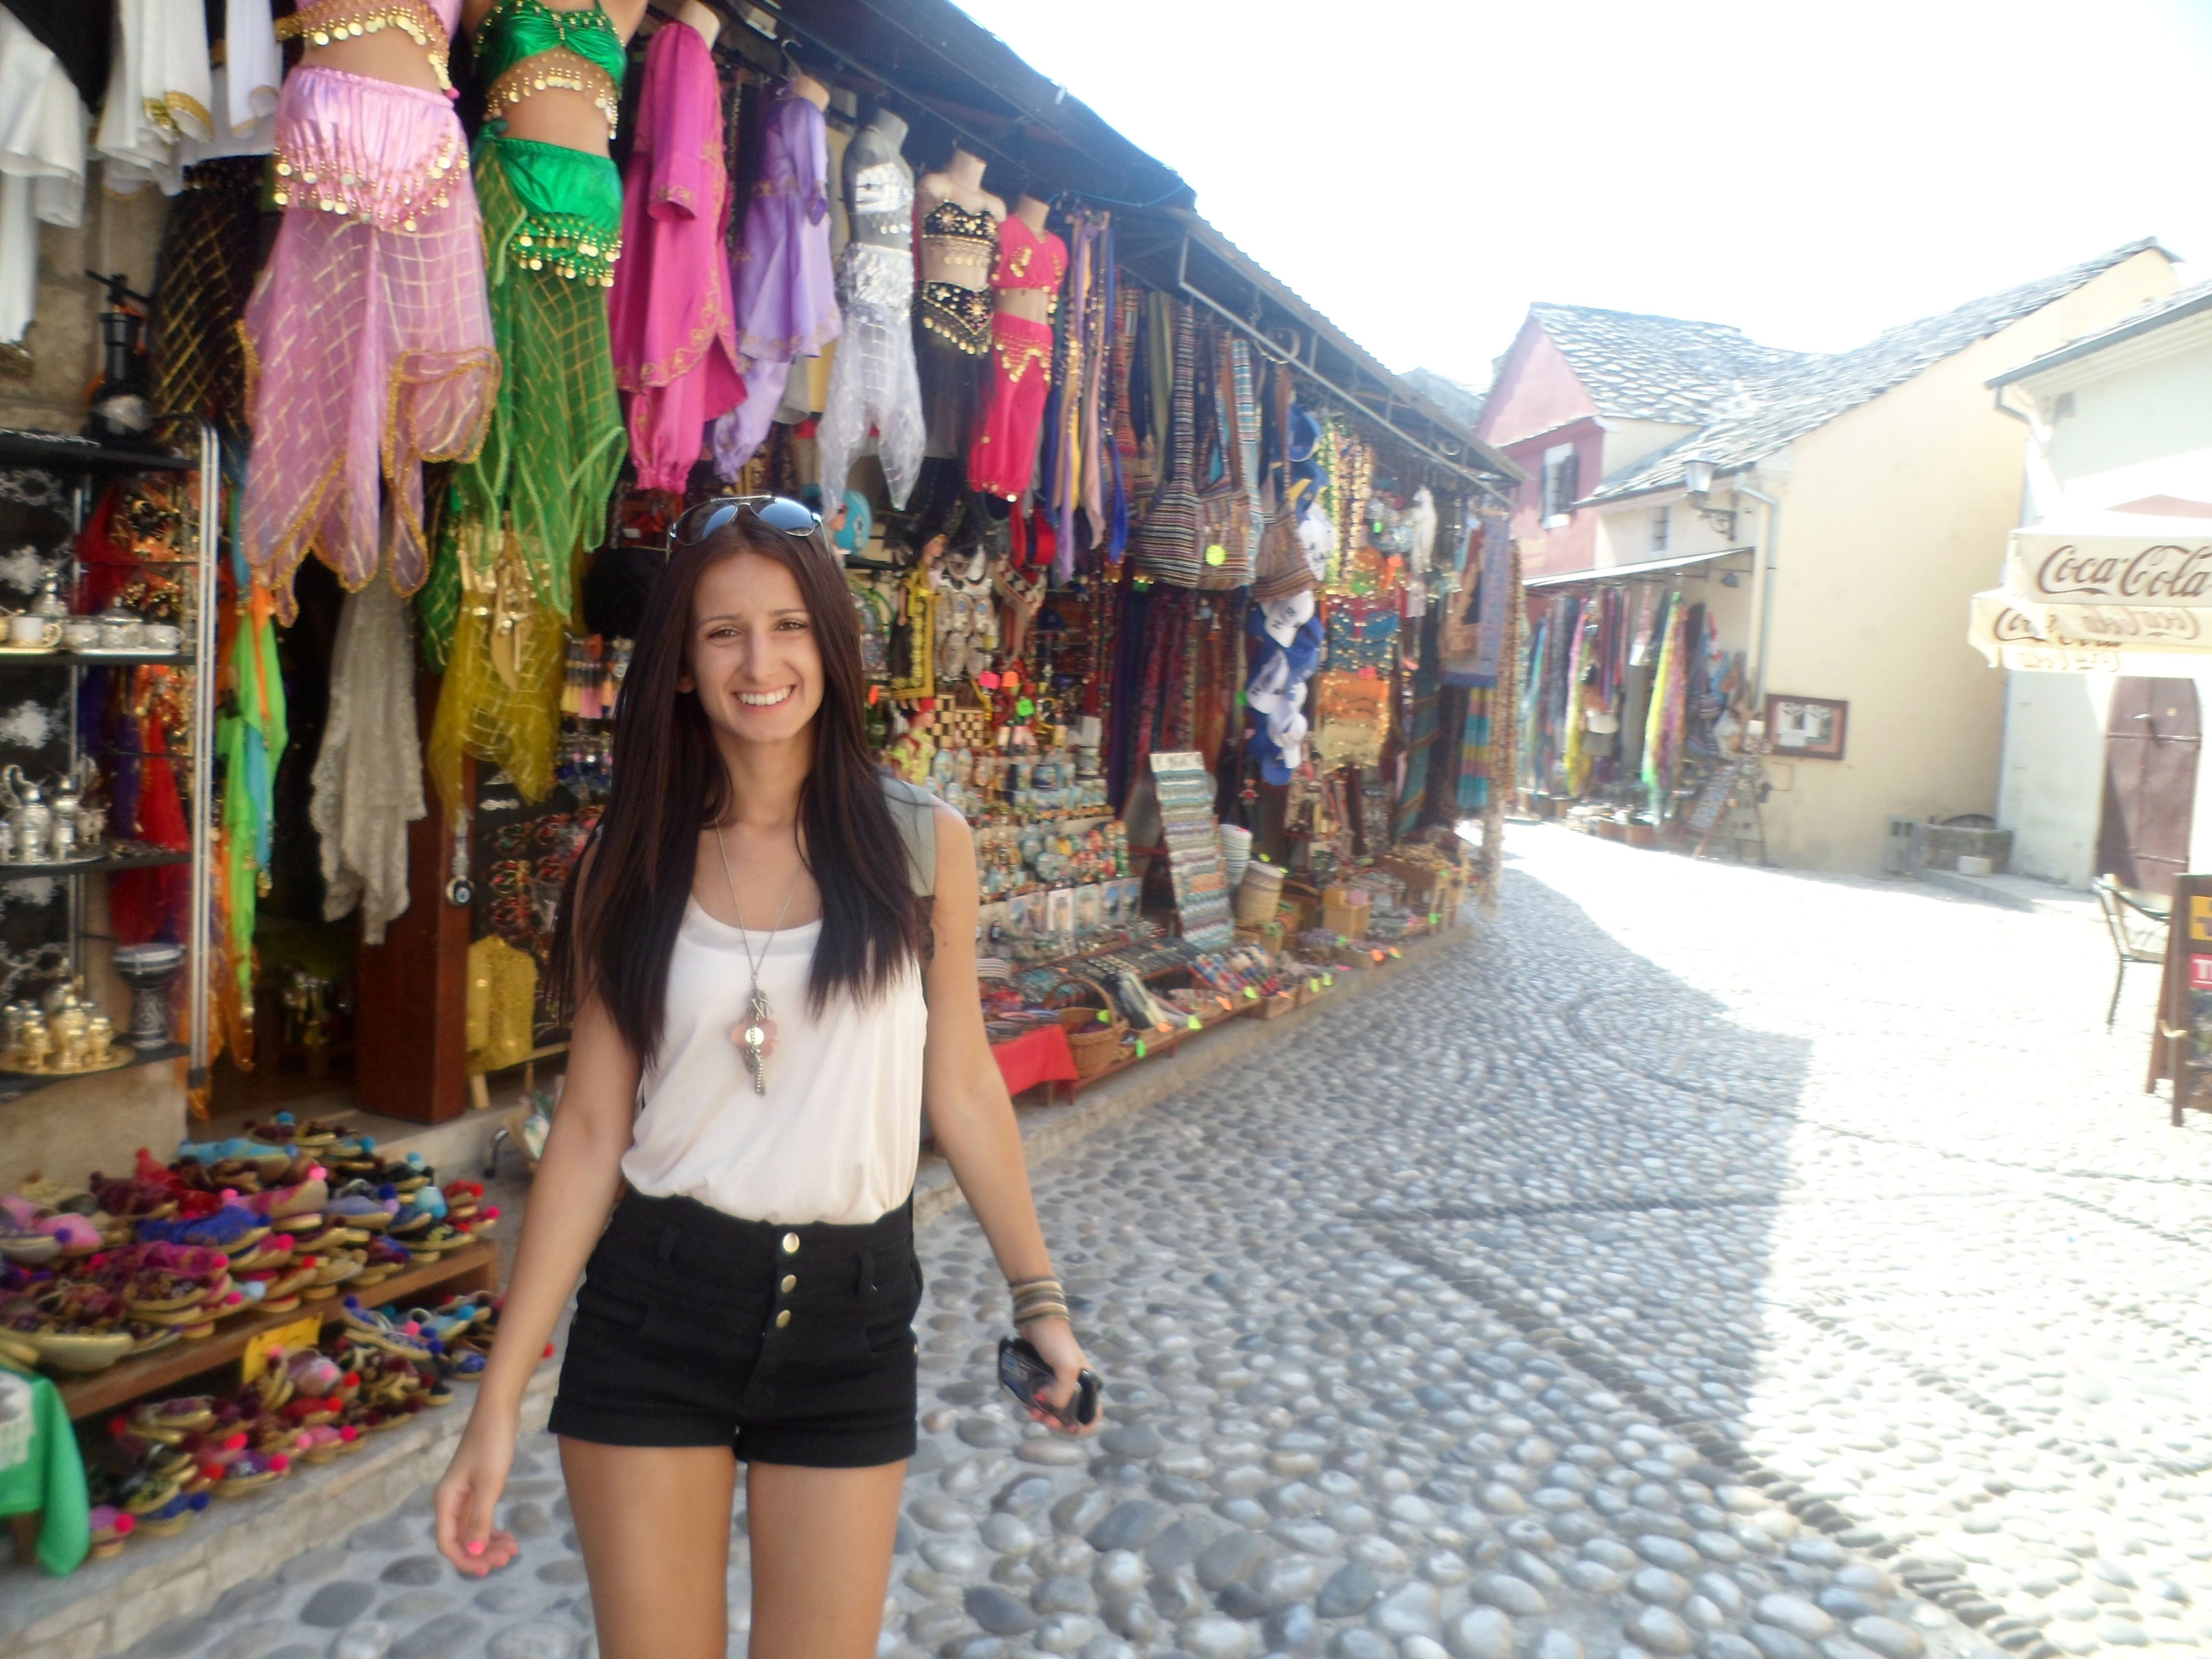 Find this Pin and more on Mostar, Bosnia & Herzegovina by bosnianaussie.